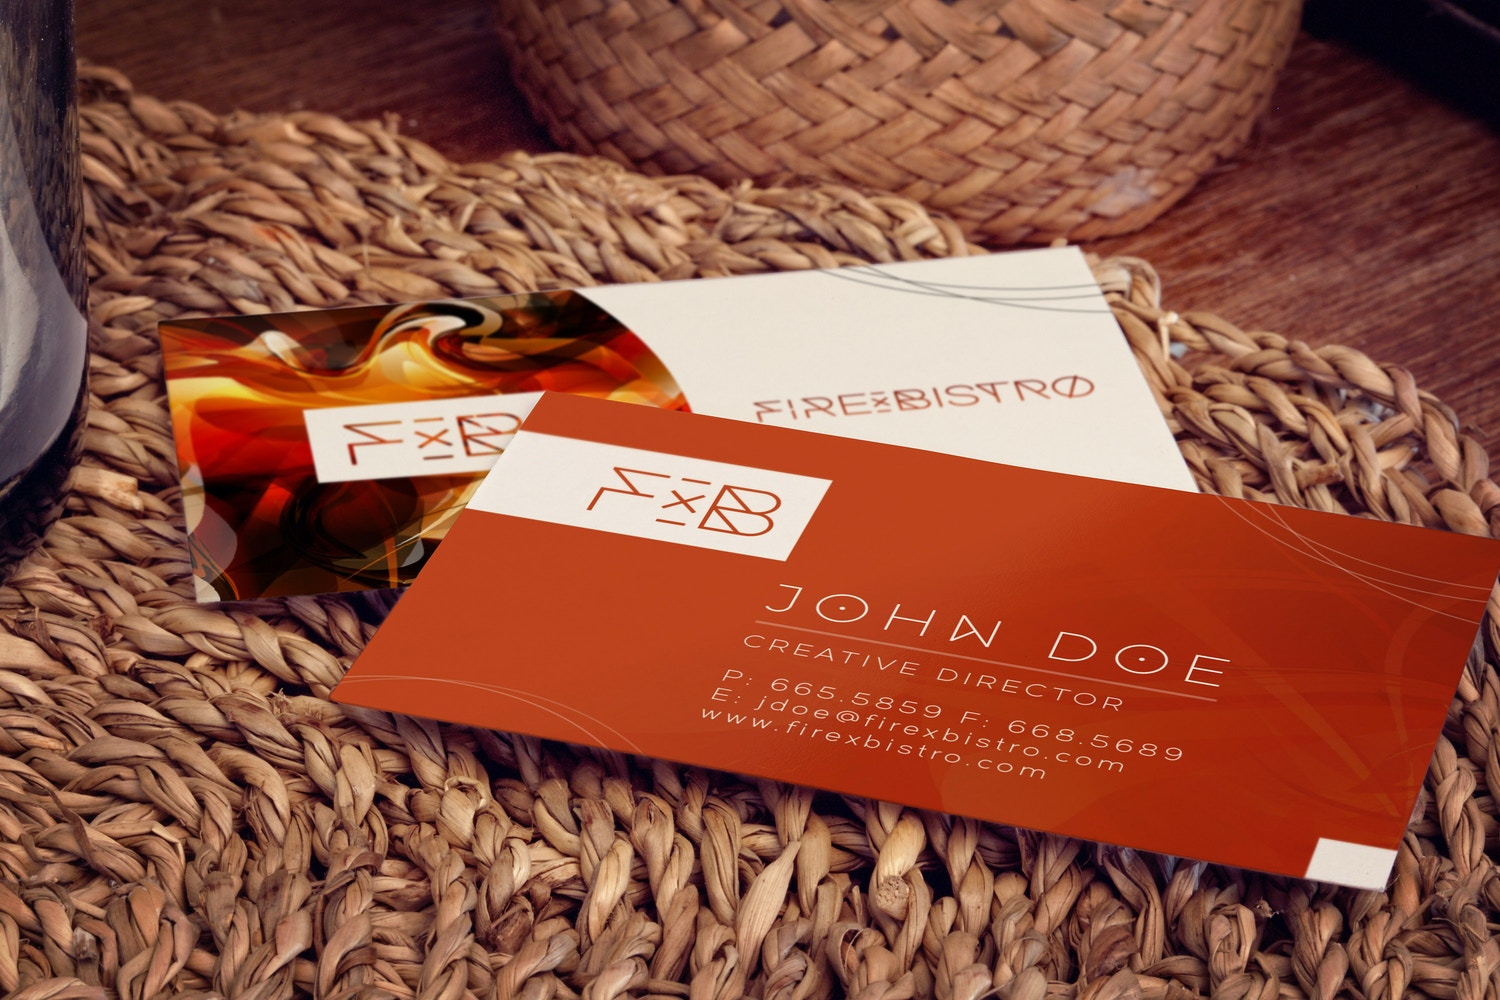 Business Cards Mockup 02 (1) by 4to Pixel on Original Mockups